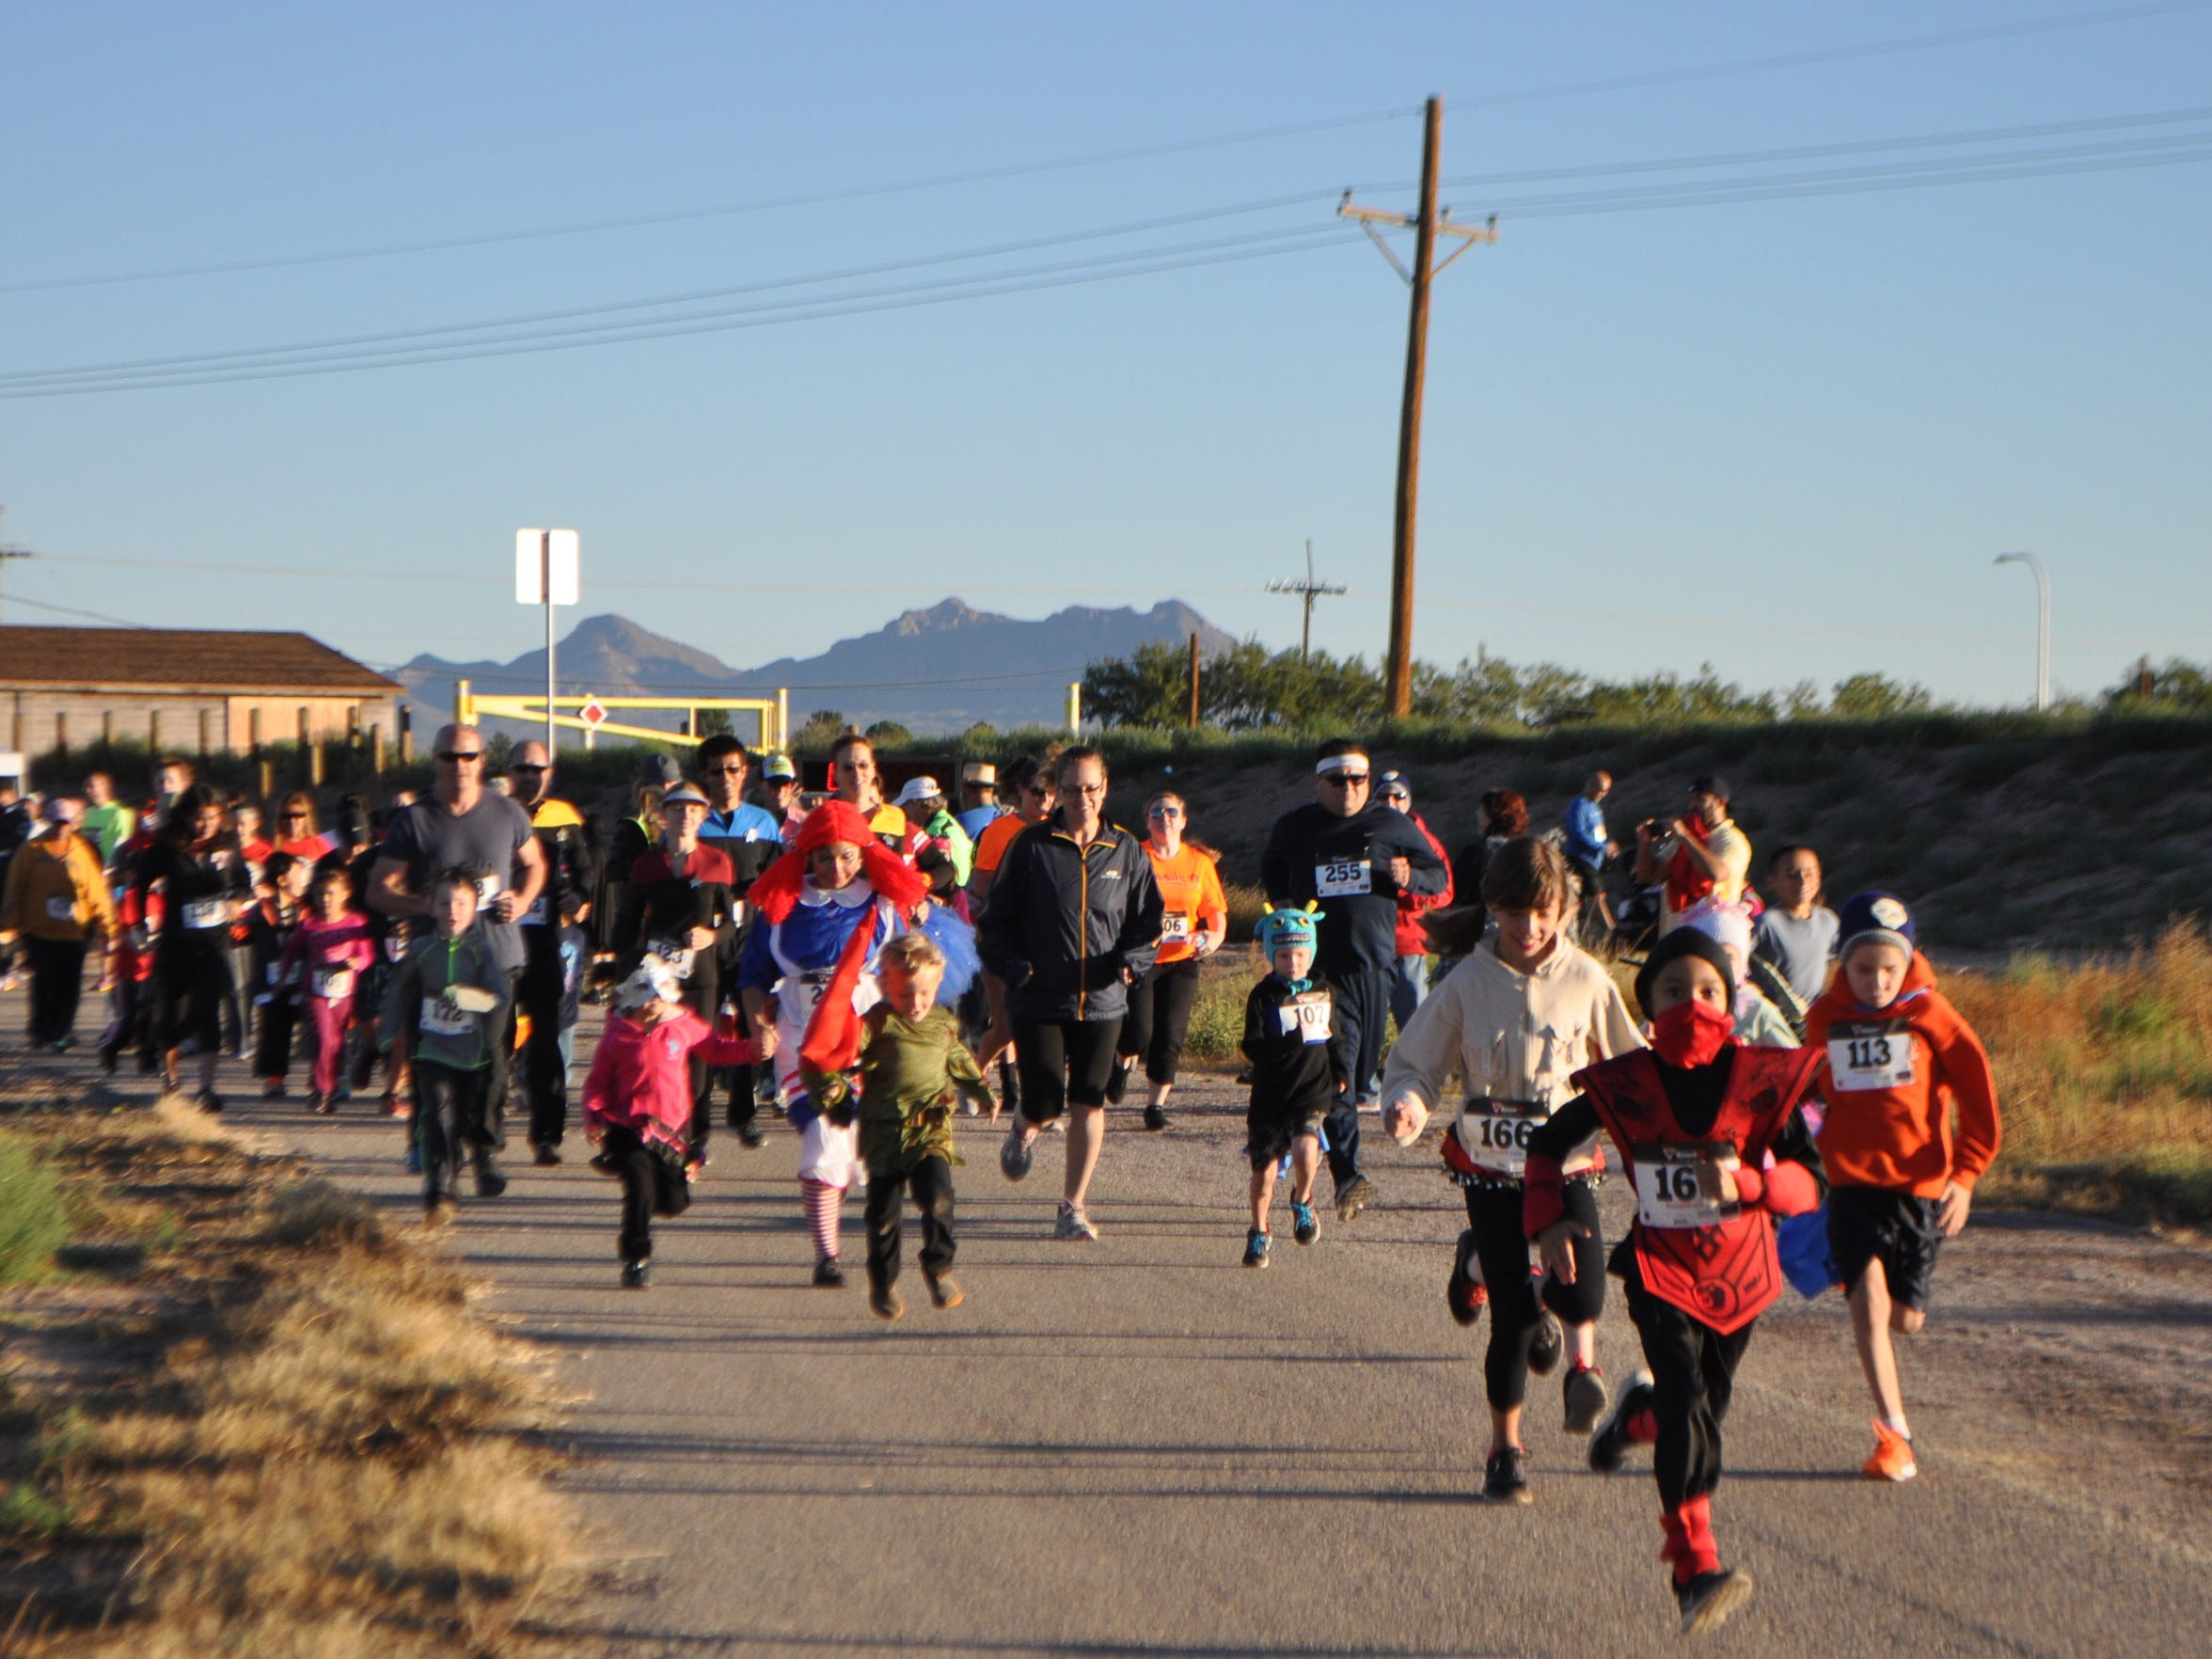 Adults and children participate in the 2014 Las Cruces Monster Run at La Llorona Park. Last year, the Monster Run attracted 184 people and more are expected to attend this year's race.